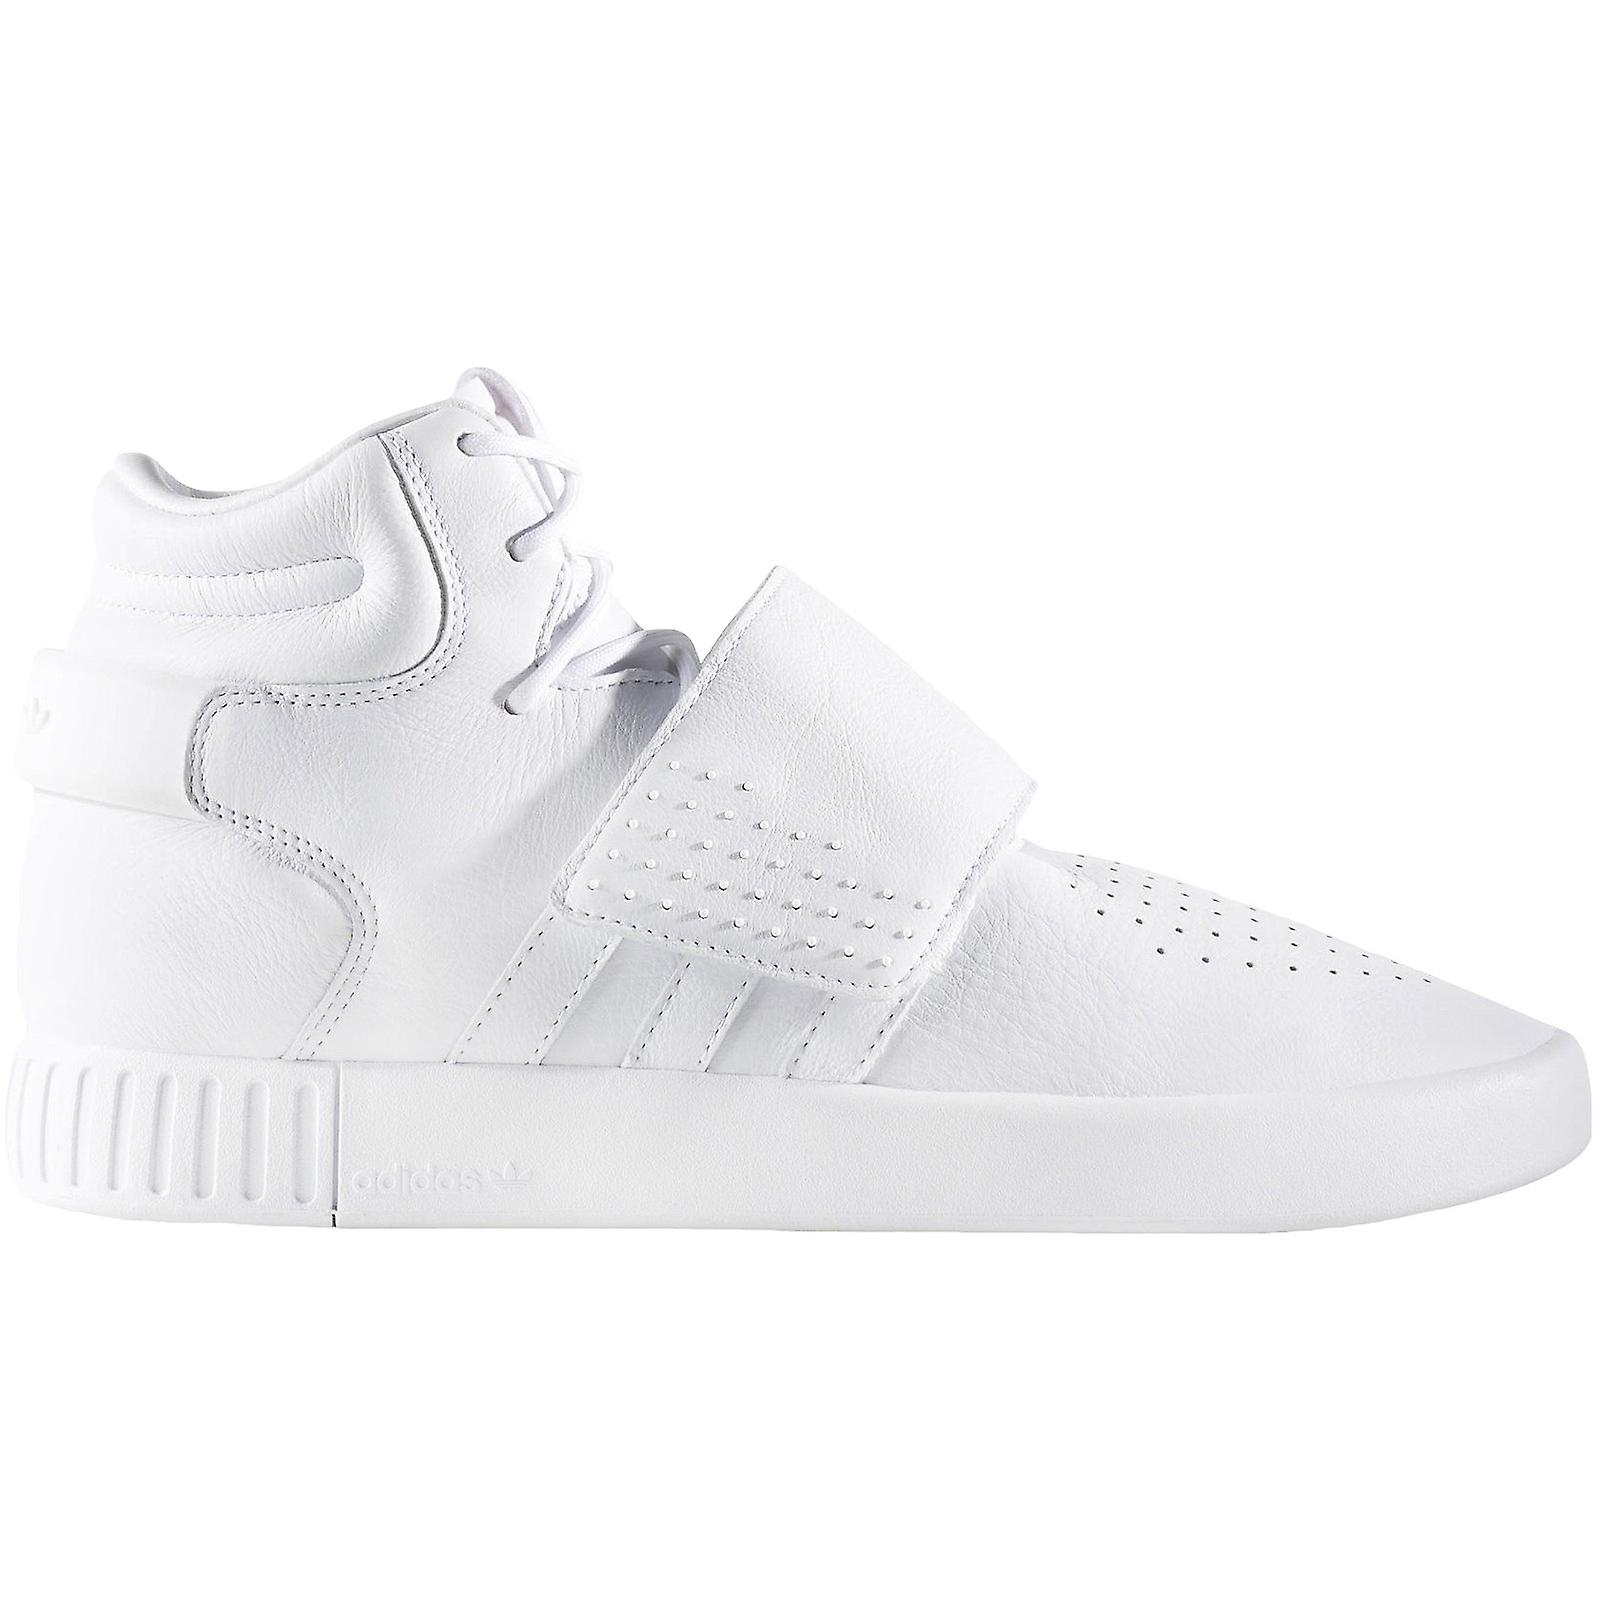 adidas Originals Mens Tubular Invader Strap Casual Lace Up Hi Top Trainers Chaussures